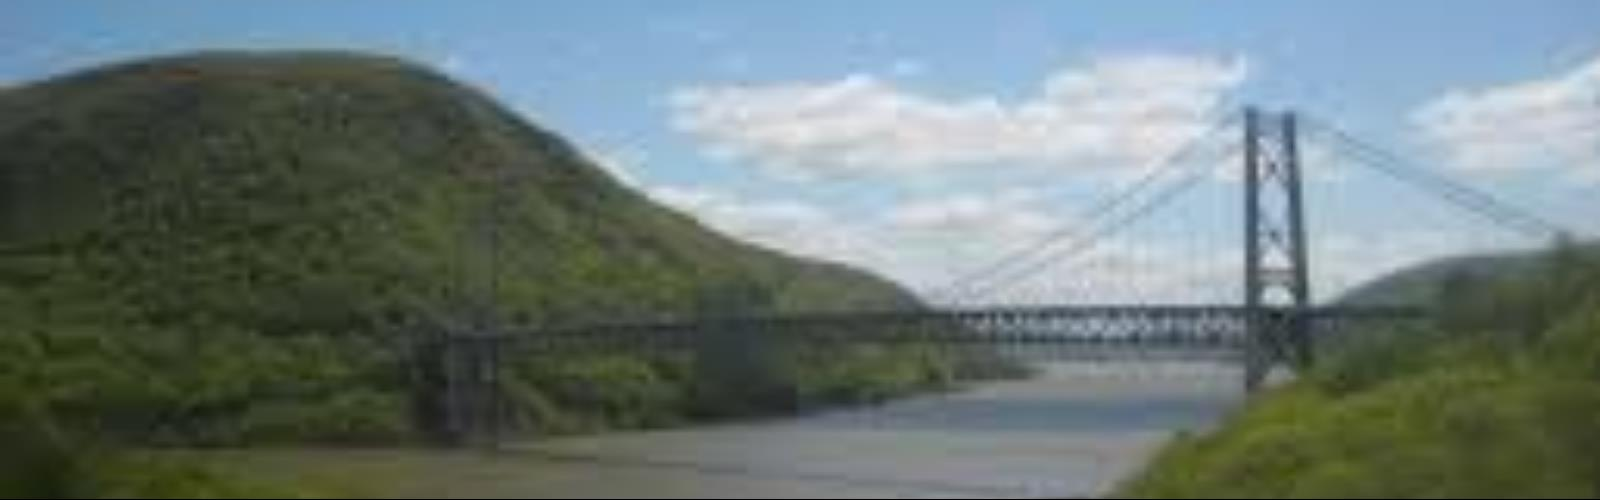 Westchester County, New York Harrison To Rye - Hiking  sky outdoor grass mountain cloud bridge lake highway